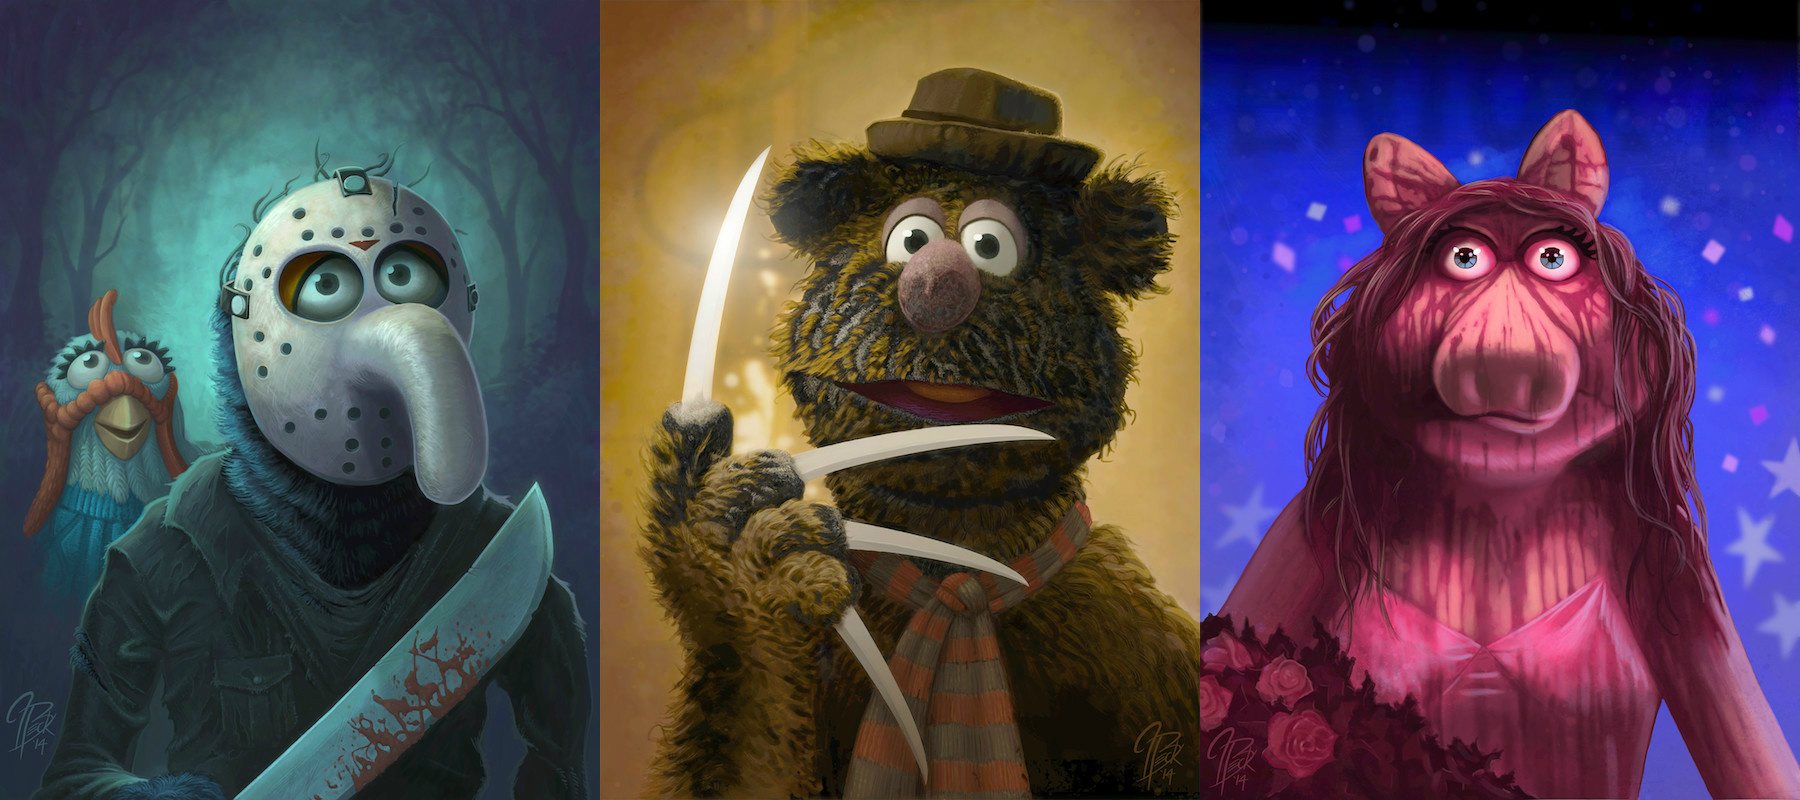 The Muppets as horror movie characters